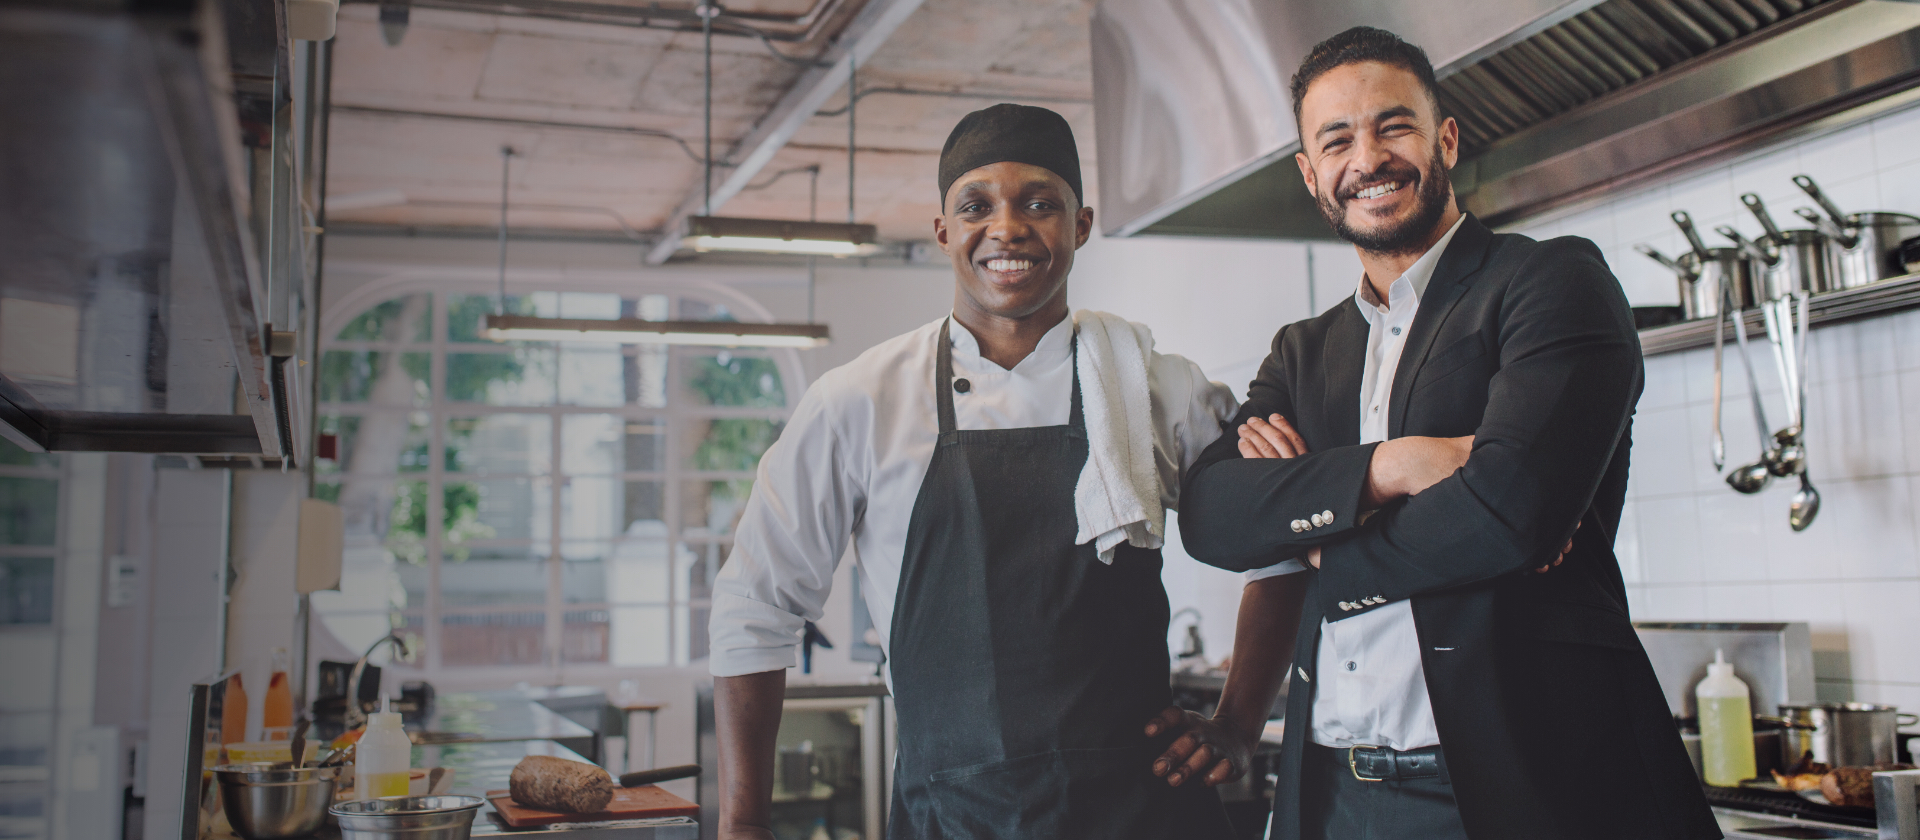 Restaurant Owner and worker